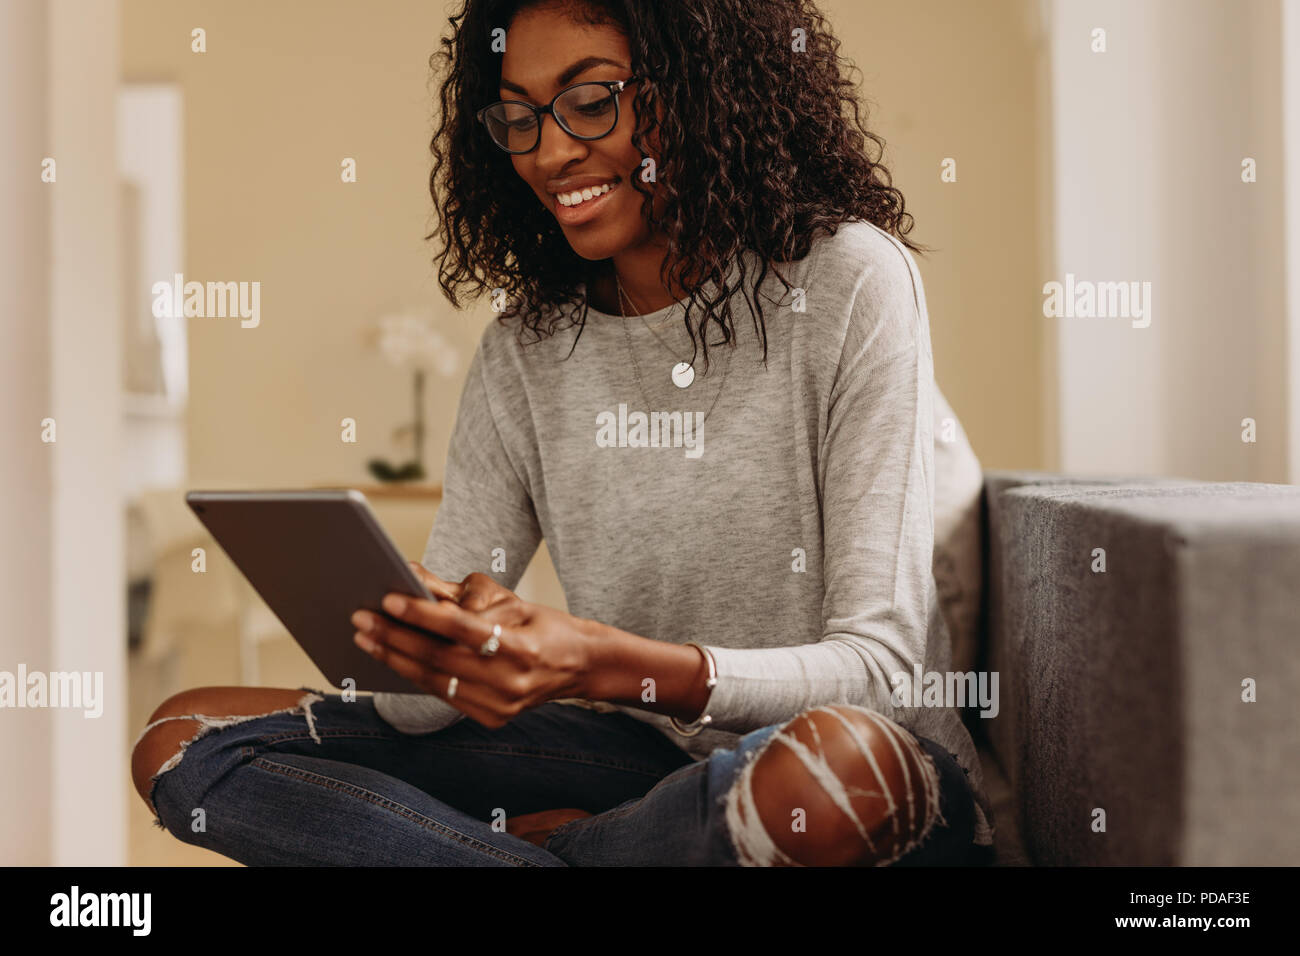 Woman sitting on sofa at home working on tablet pc. Smiling woman using a tablet pc while sitting at home with legs crossed. - Stock Image